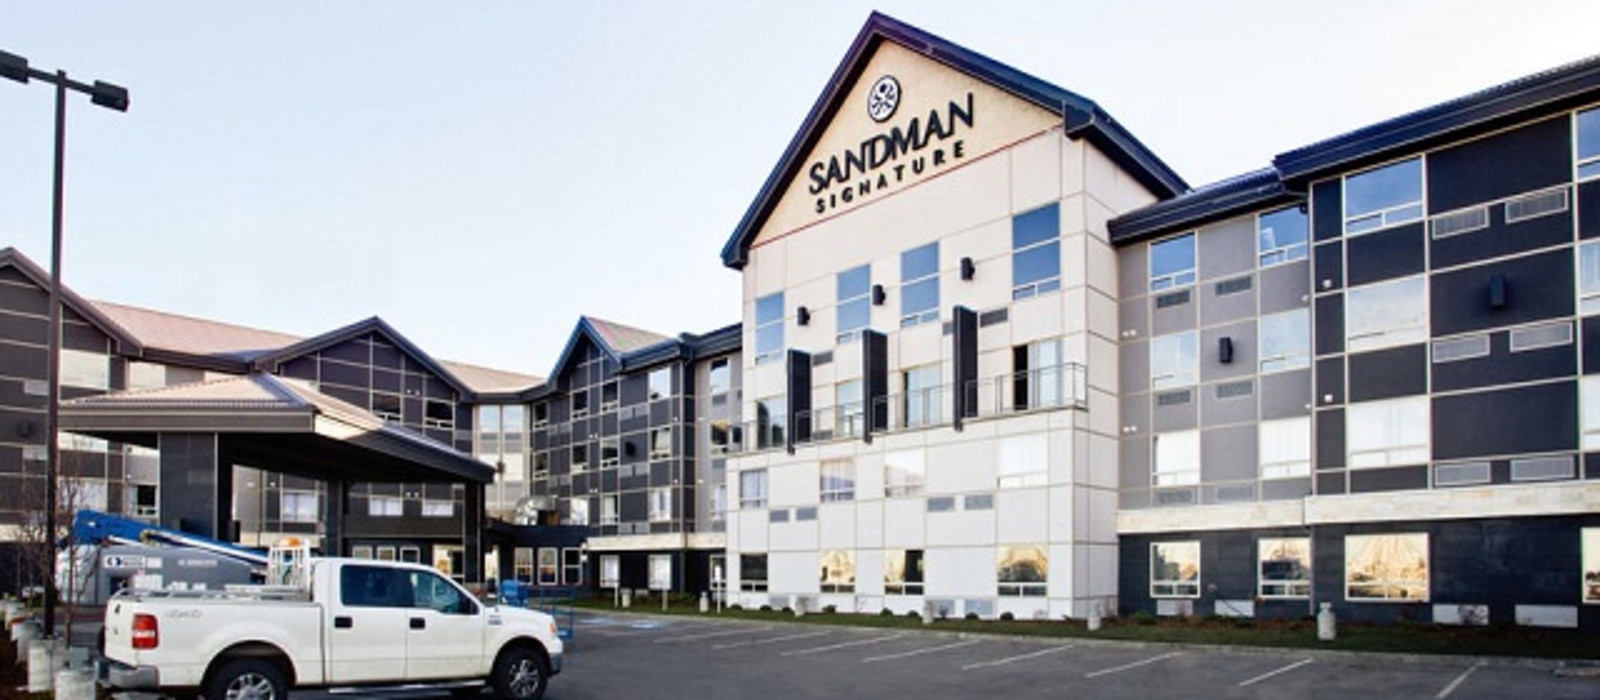 Hotel Sandman Signature Edmonton South Canada